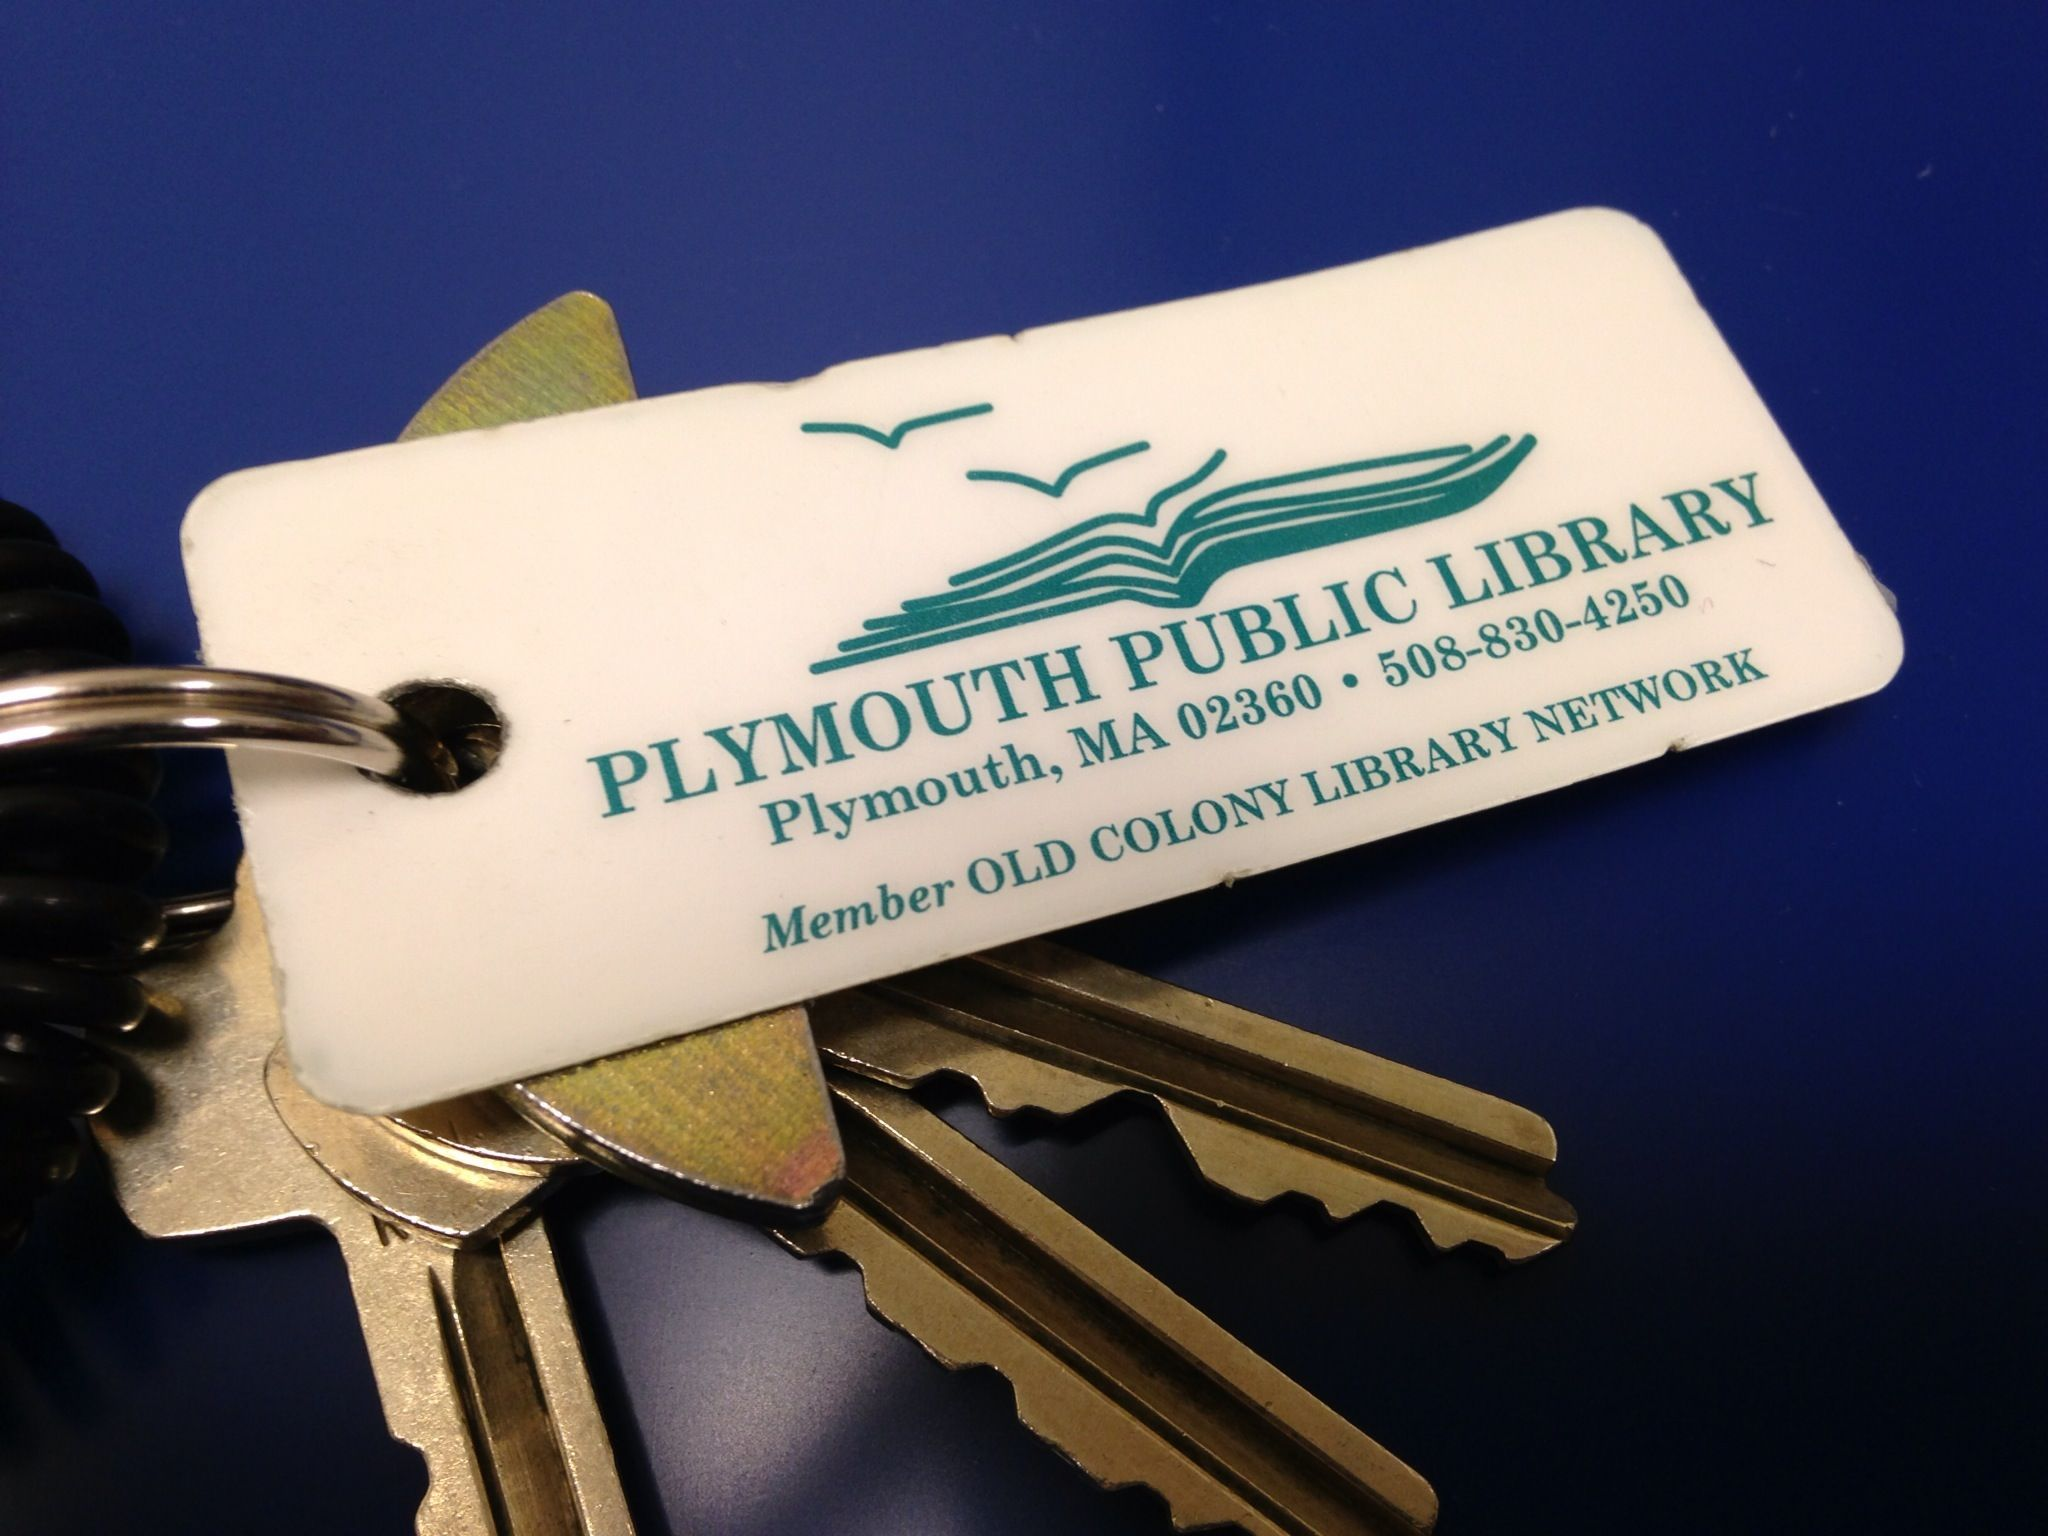 Plymouth public library plymouth ma